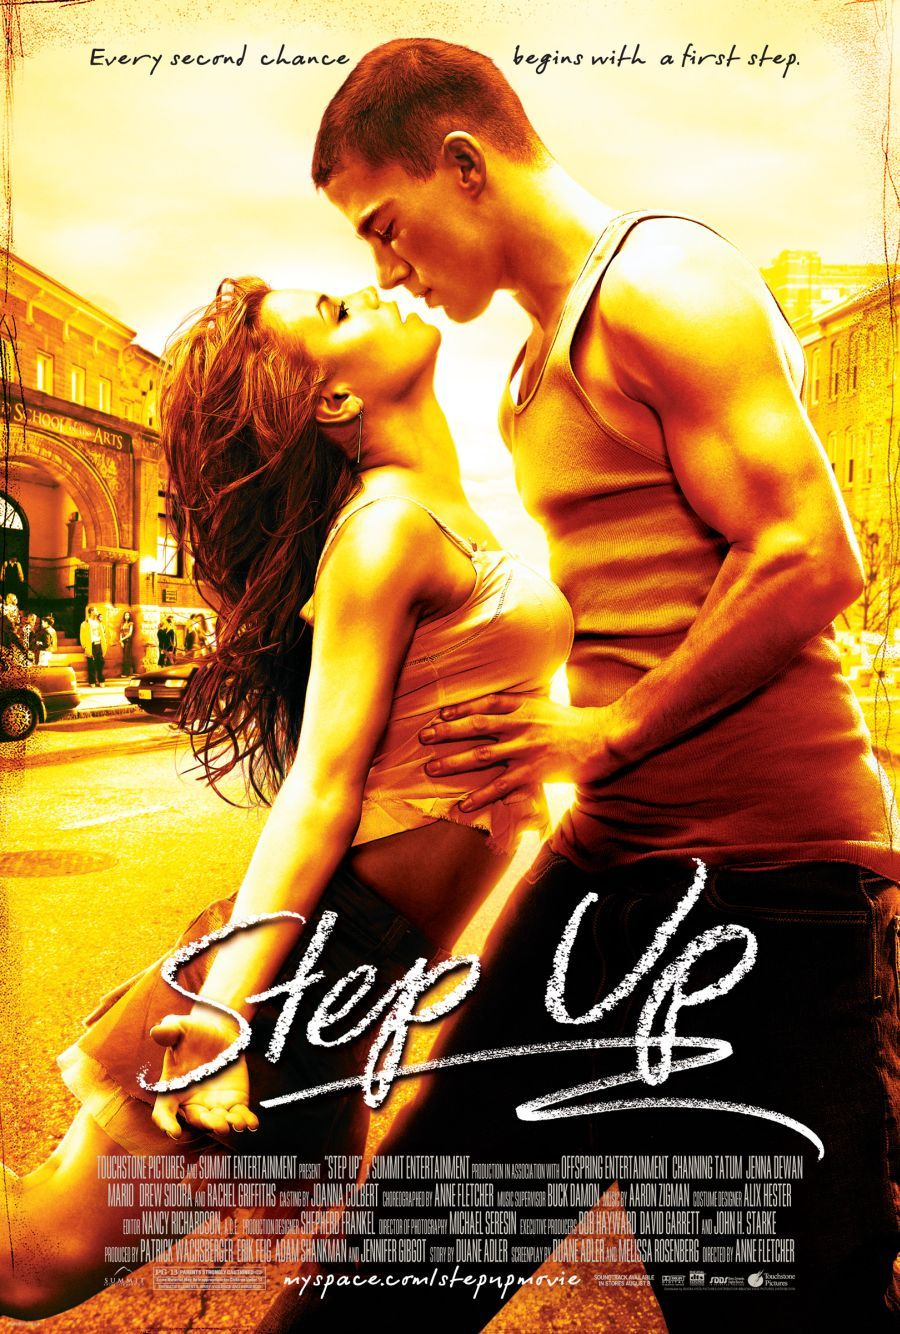 Step up  poster is copied by Ek Vilain